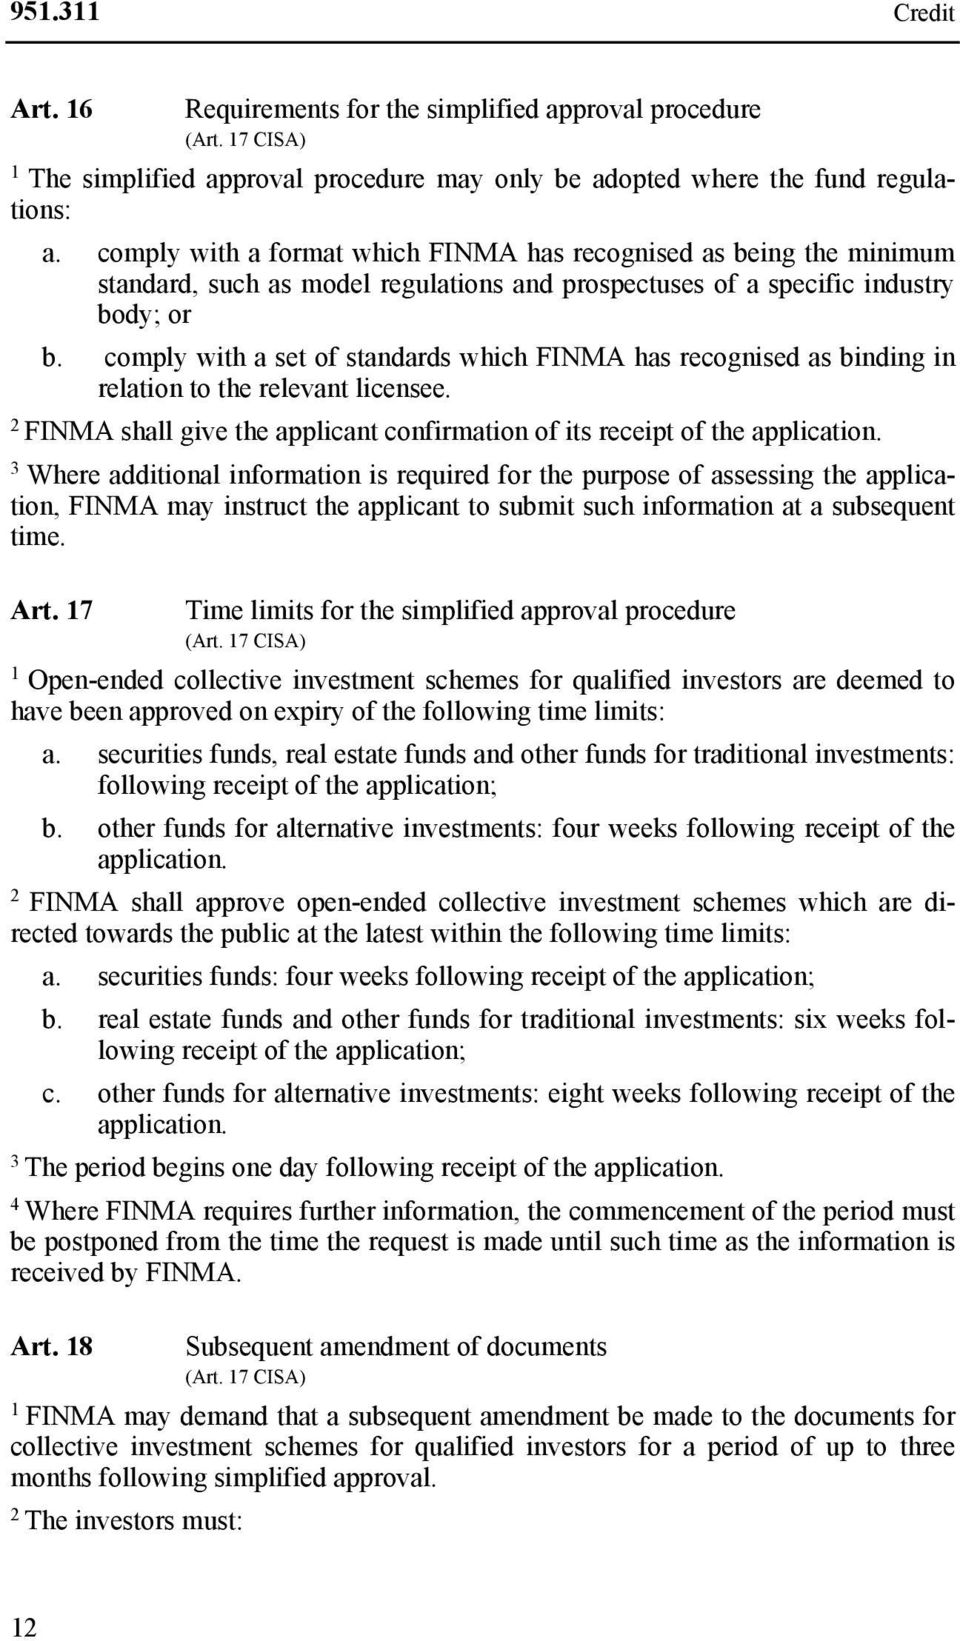 comply with a set of standards which FINMA has recognised as binding in relation to the relevant licensee. 2 FINMA shall give the applicant confirmation of its receipt of the application.